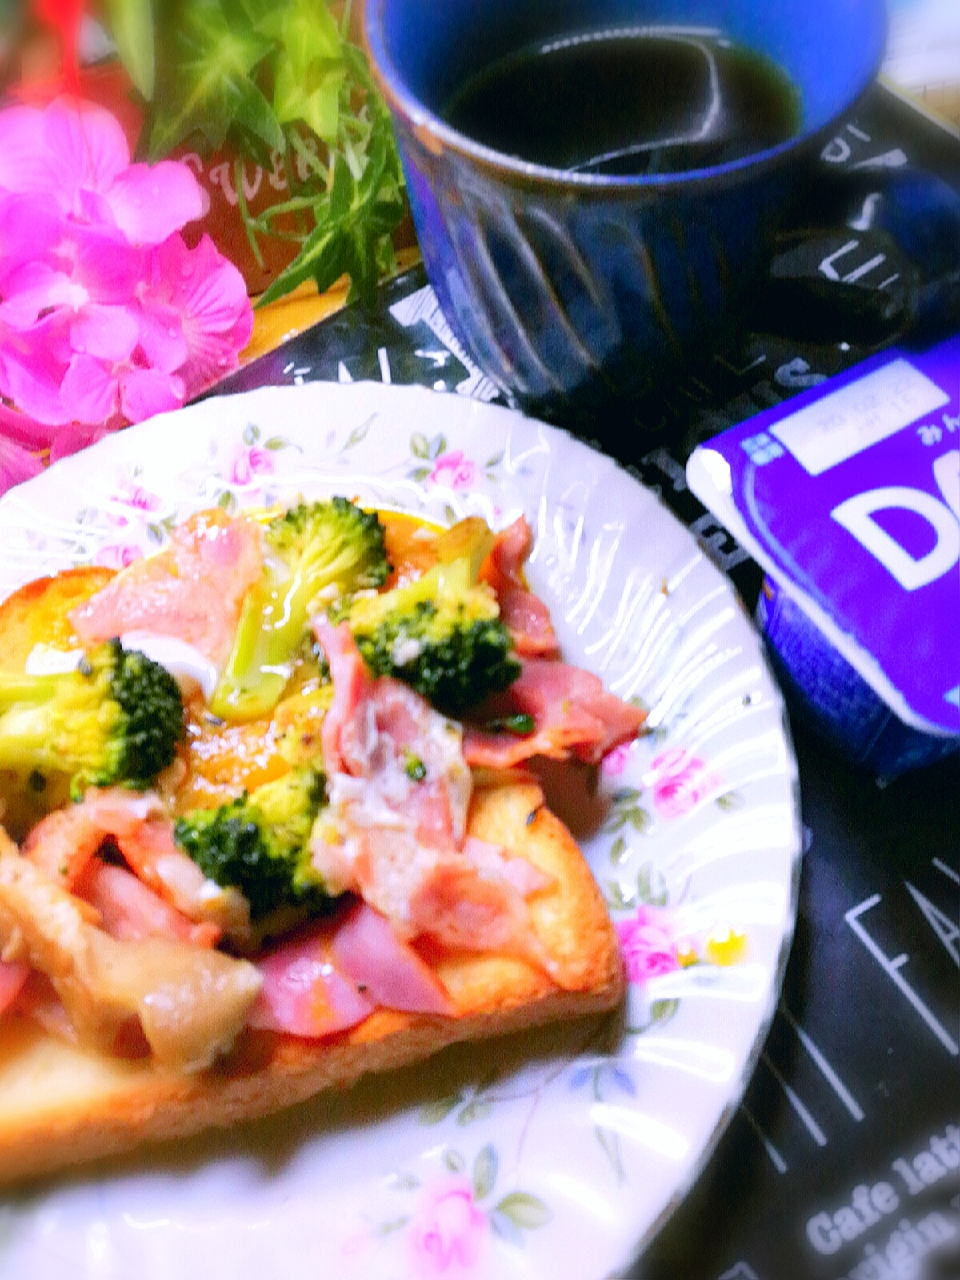 Today's breakfast😋delicious( ˘ ³˘)♥